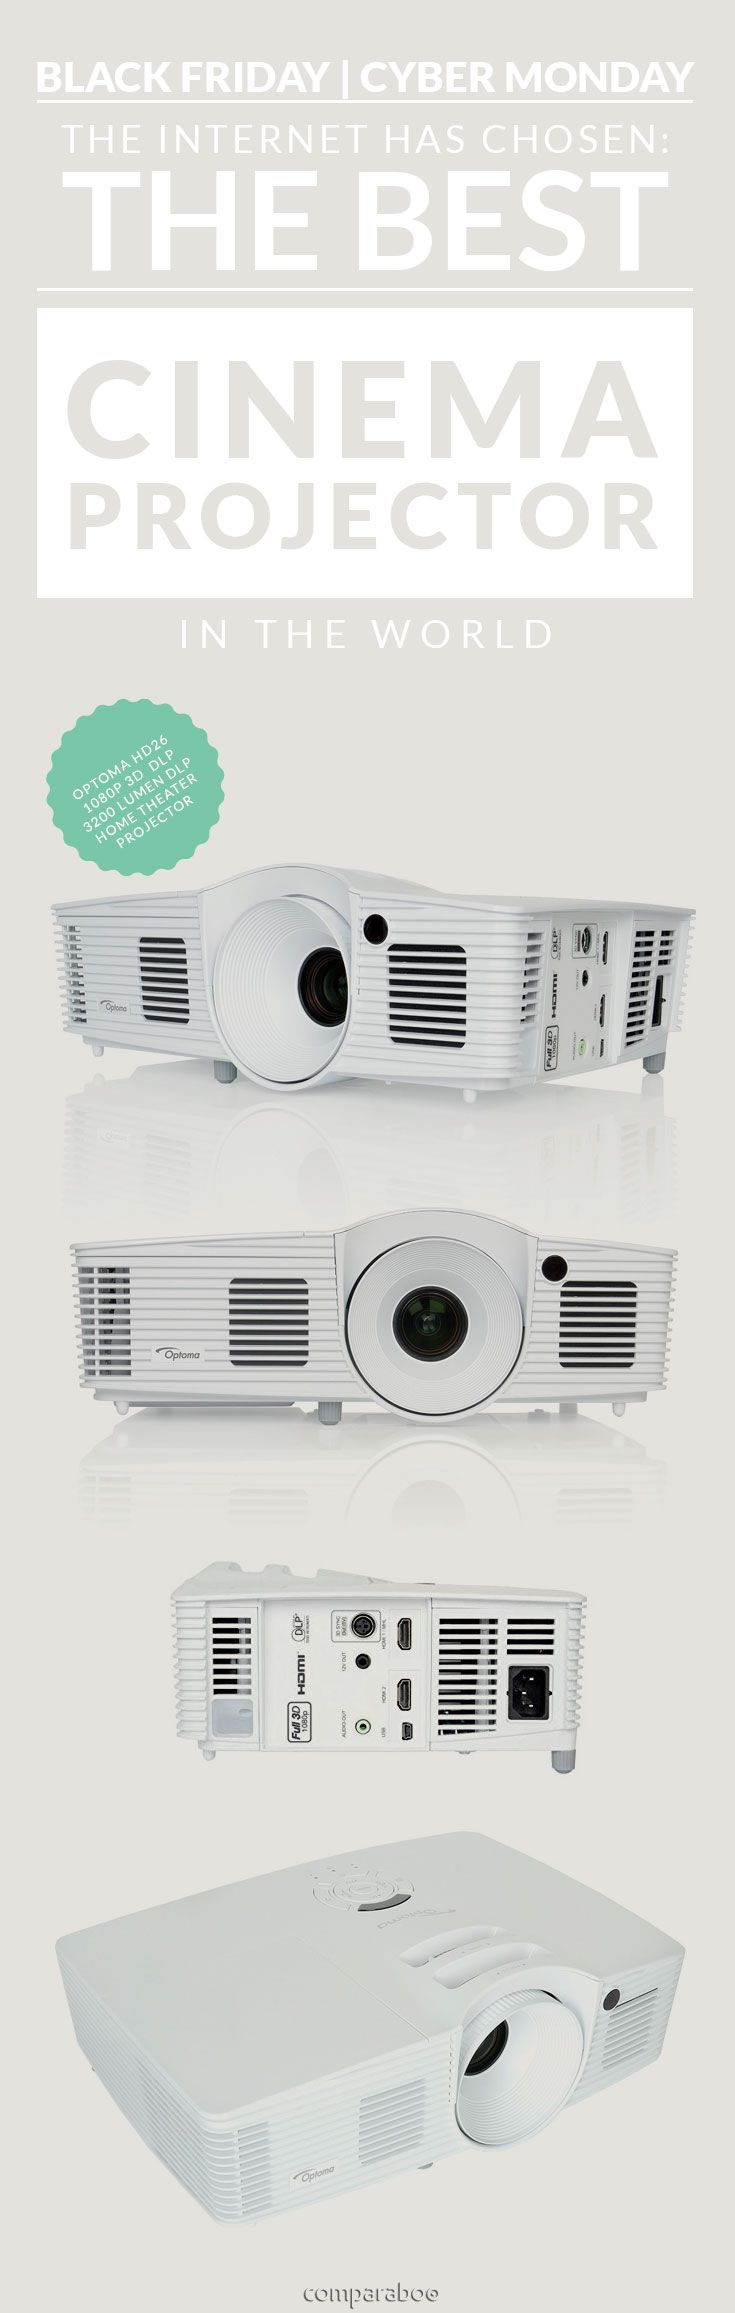 Create a home theater on your wall. Congratulations @optomaUK on the #1 brightest high contrast cinema projector in the world www.comparaboo.com | @comparaboo